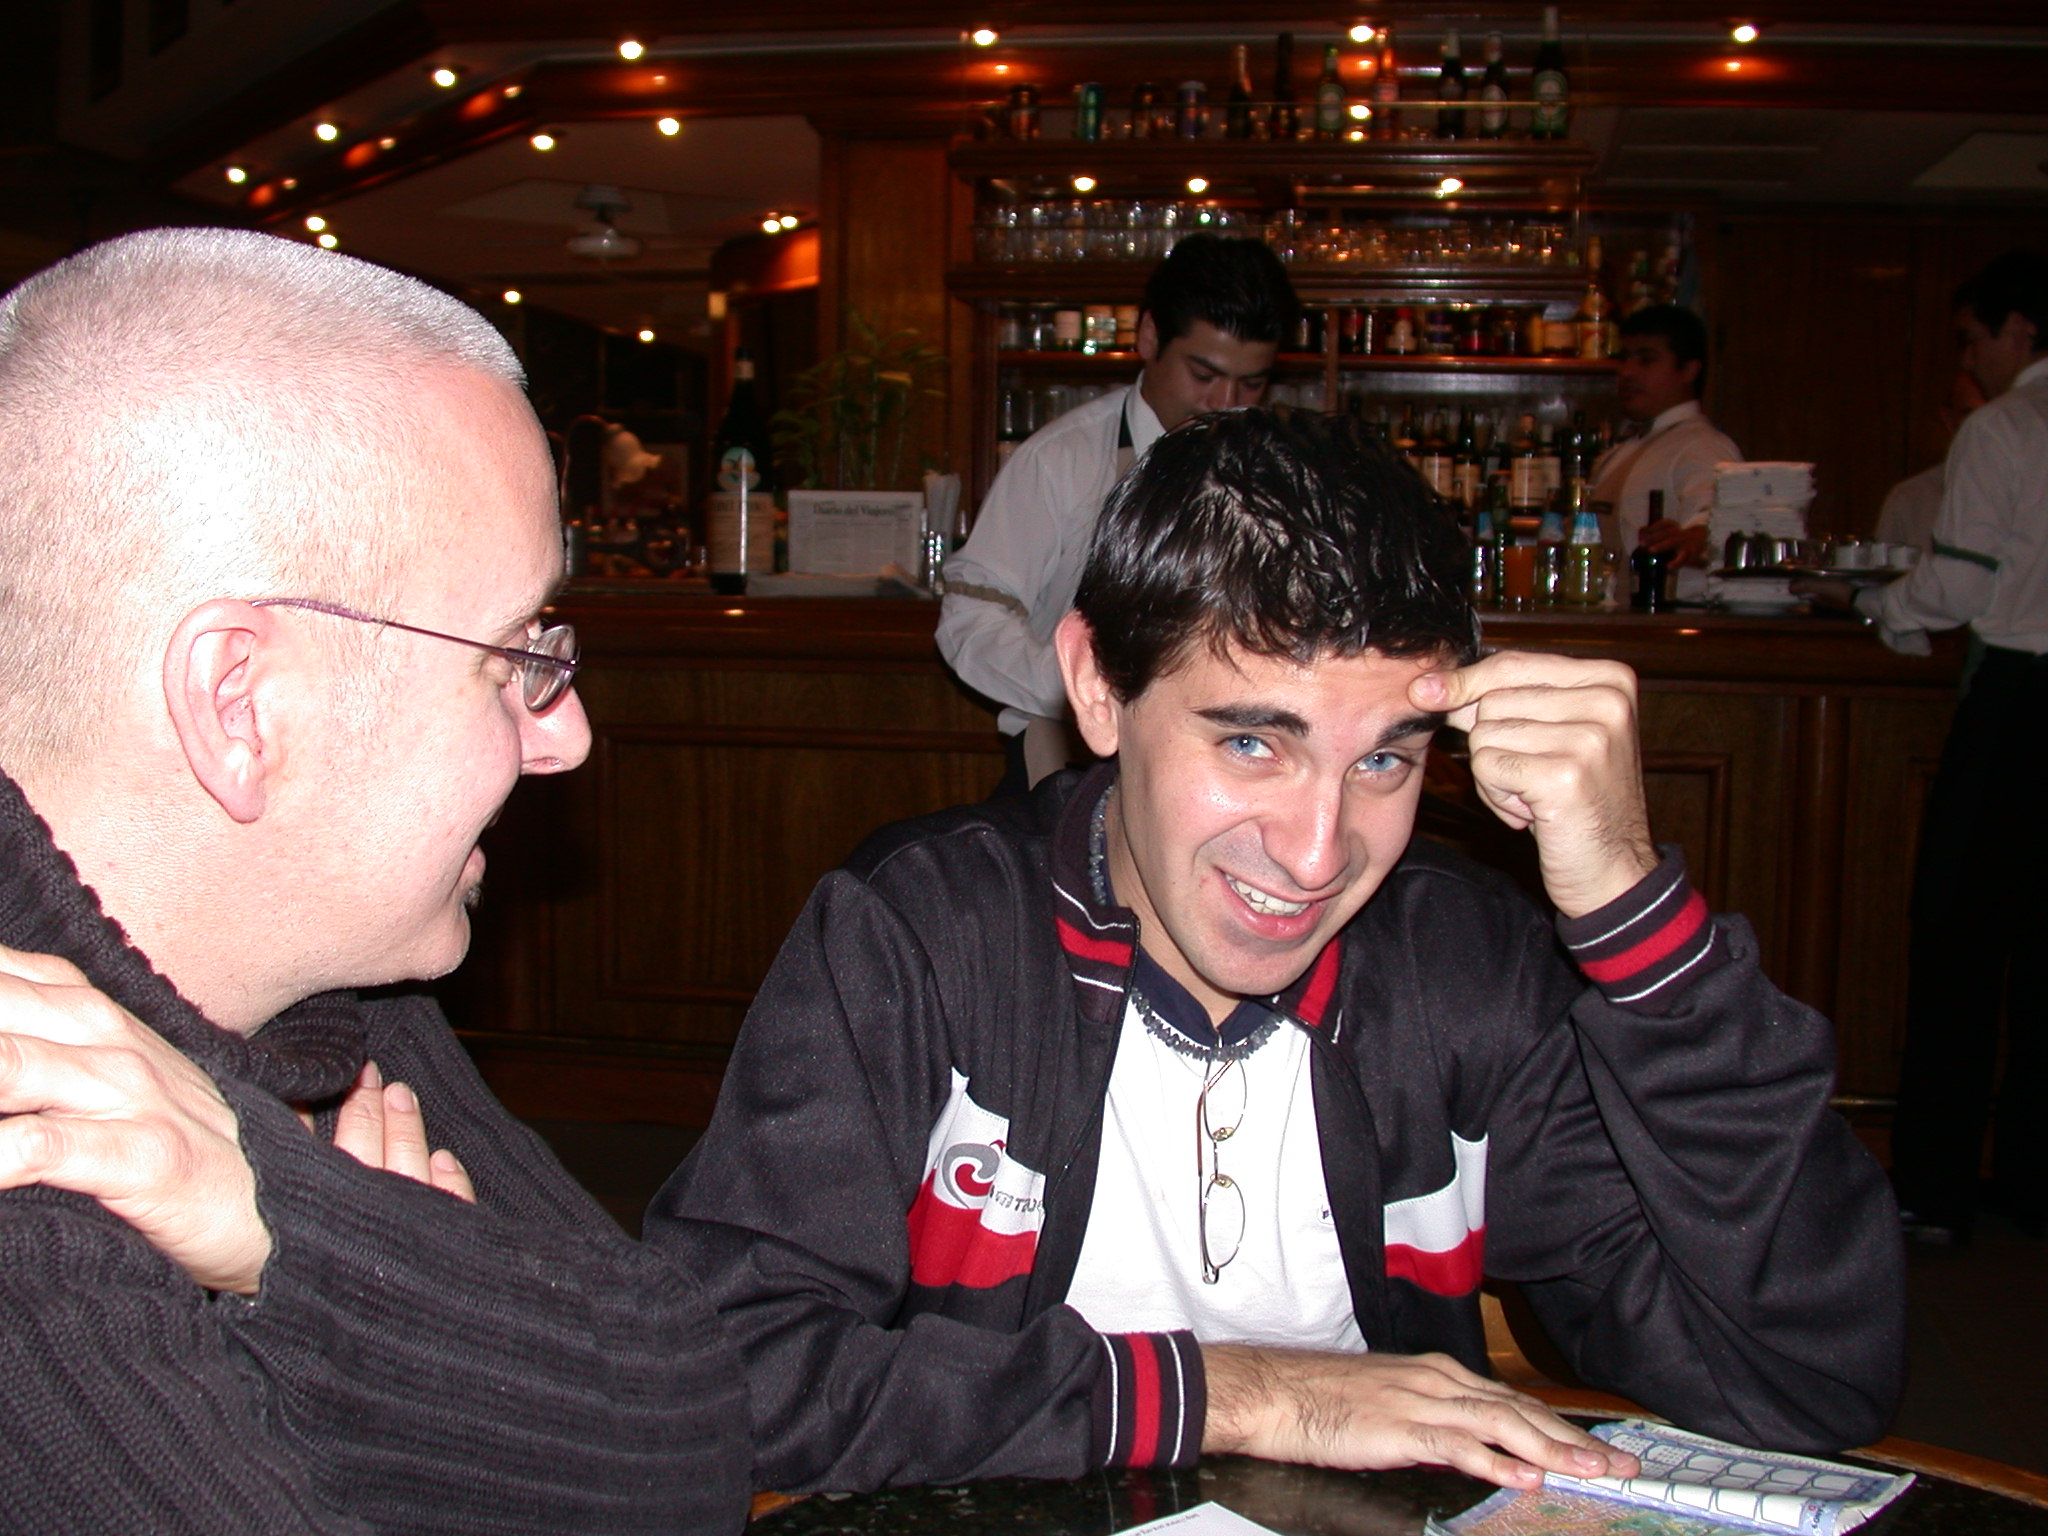 Jim e and Edgardo, La Biella Cafe, Buenos Aires, Argentina